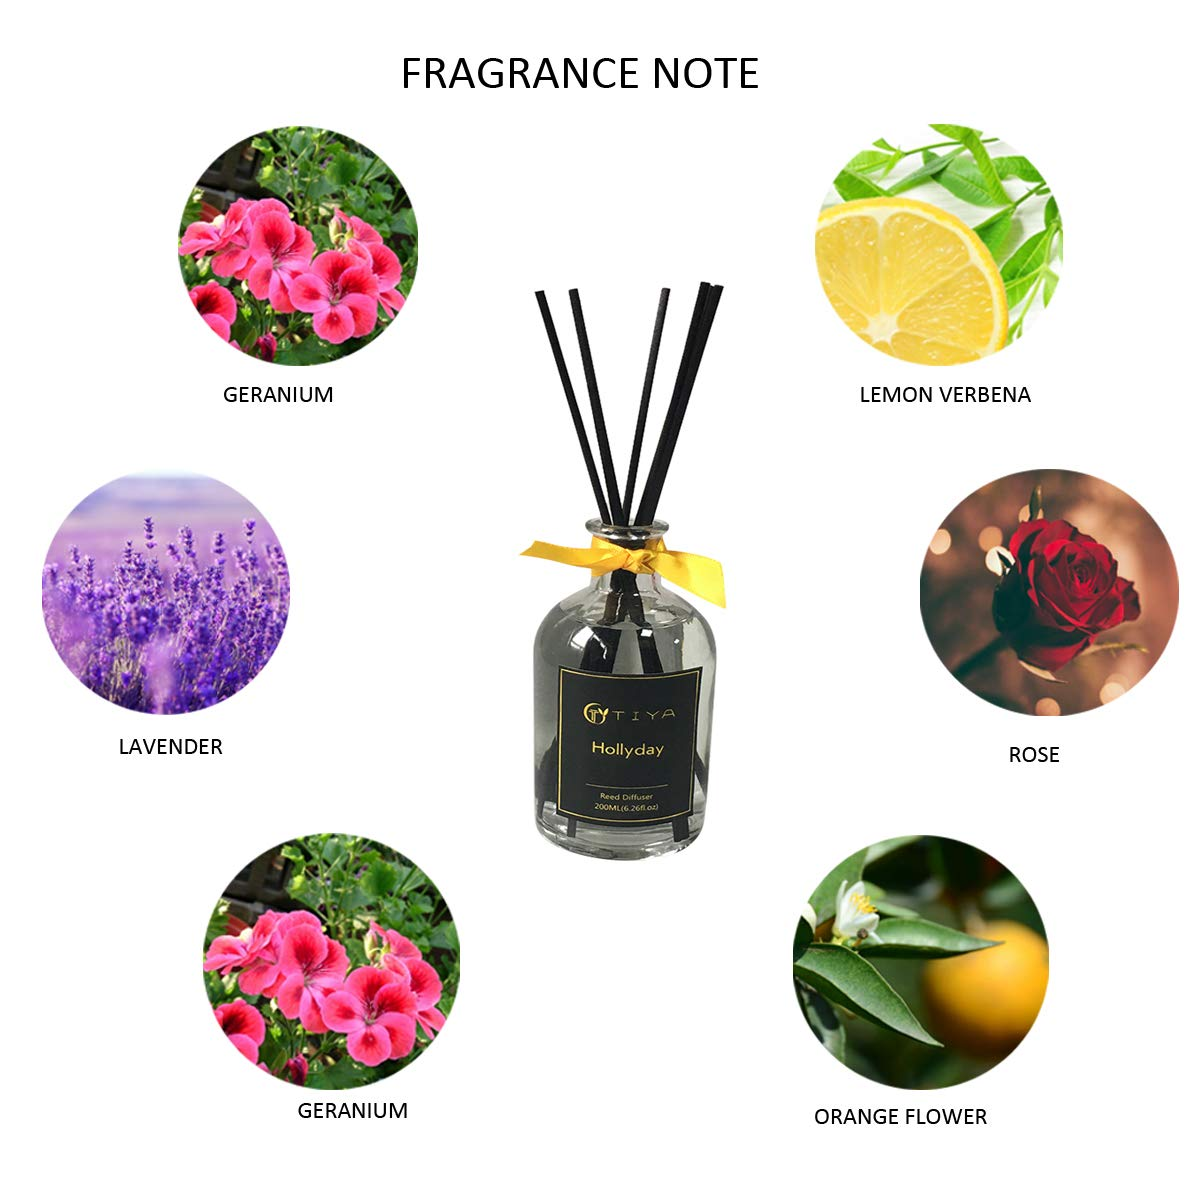 AROMATICSTORE Lavender and Lemongrass Reed Diffuser, 200 ML Essential Oil Aromatherapy Fragrance with Reed Sticks by AROMATICSTORE (Image #3)